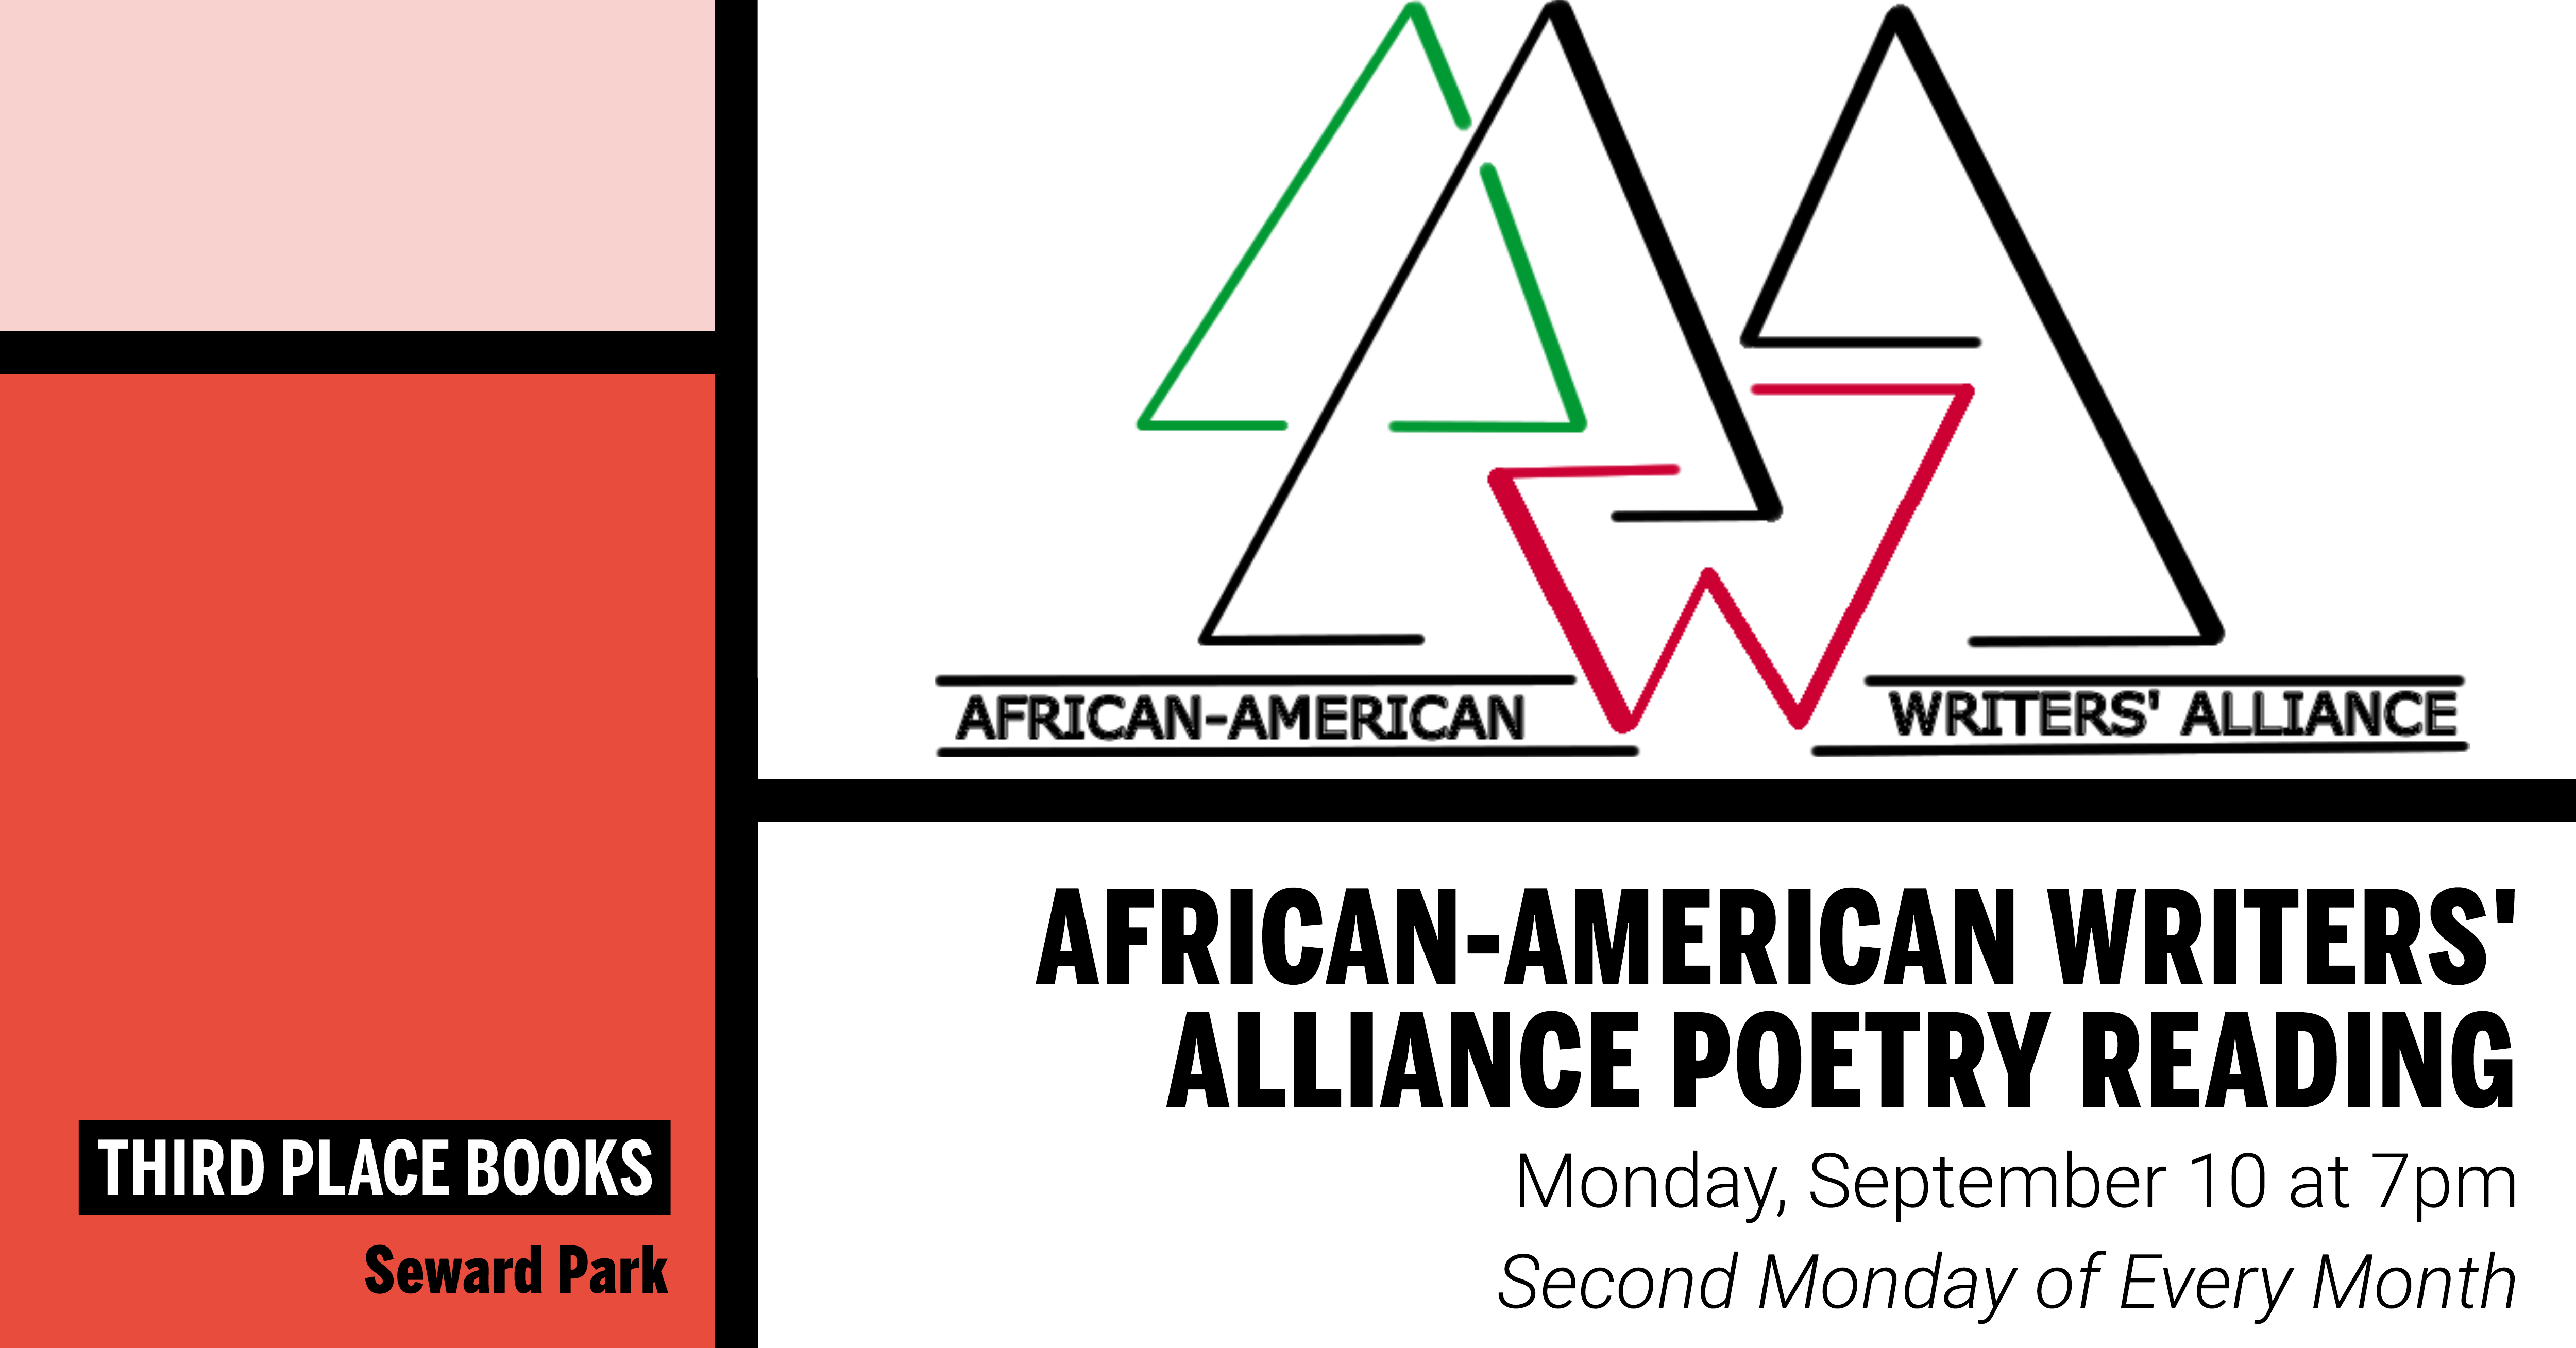 African-American Writers' Alliance Reading on Monday, September 10 at 7pm